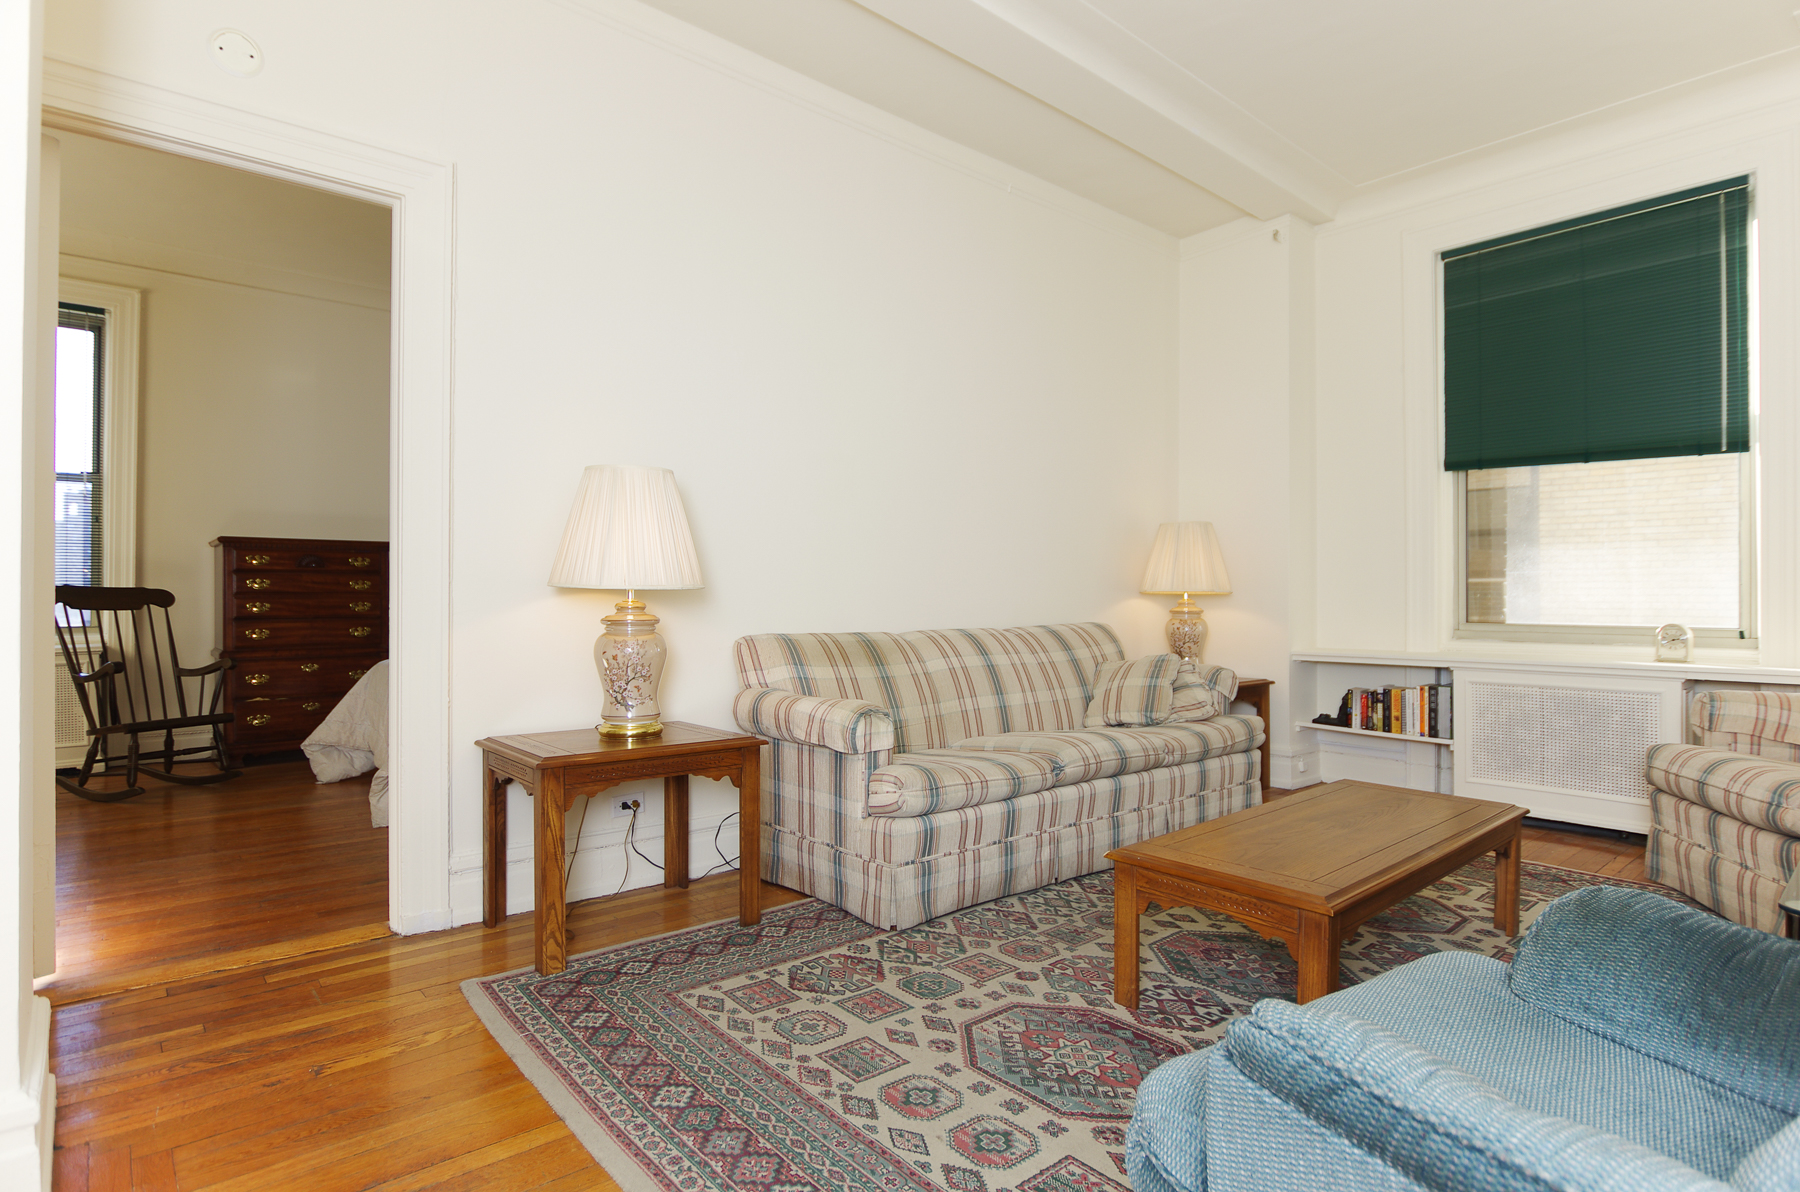 共有公寓 為 出售 在 Light-filled Prewar 1 BR 310 West 86 Street 7C Upper West Side, New York, 紐約州, 10024 美國